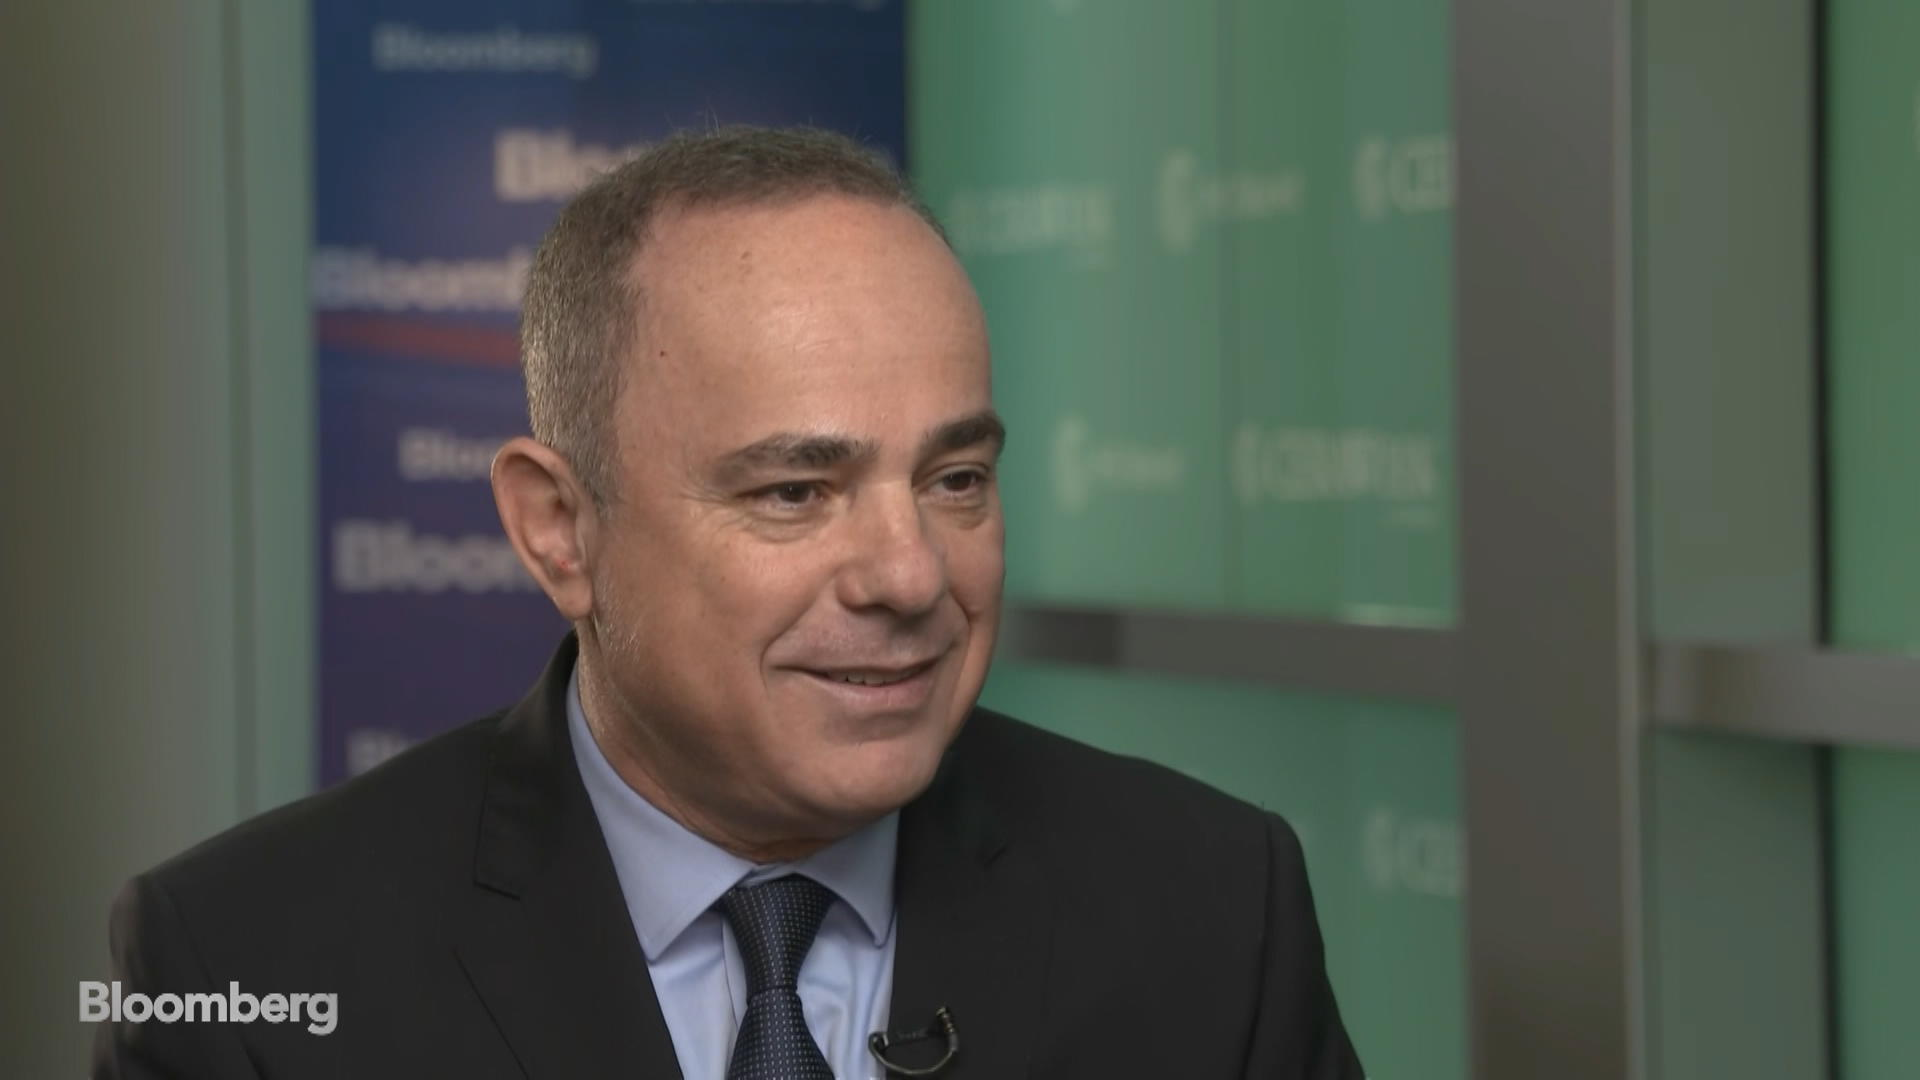 Israel Energy Minister Steinitz on Natural Gas Plans